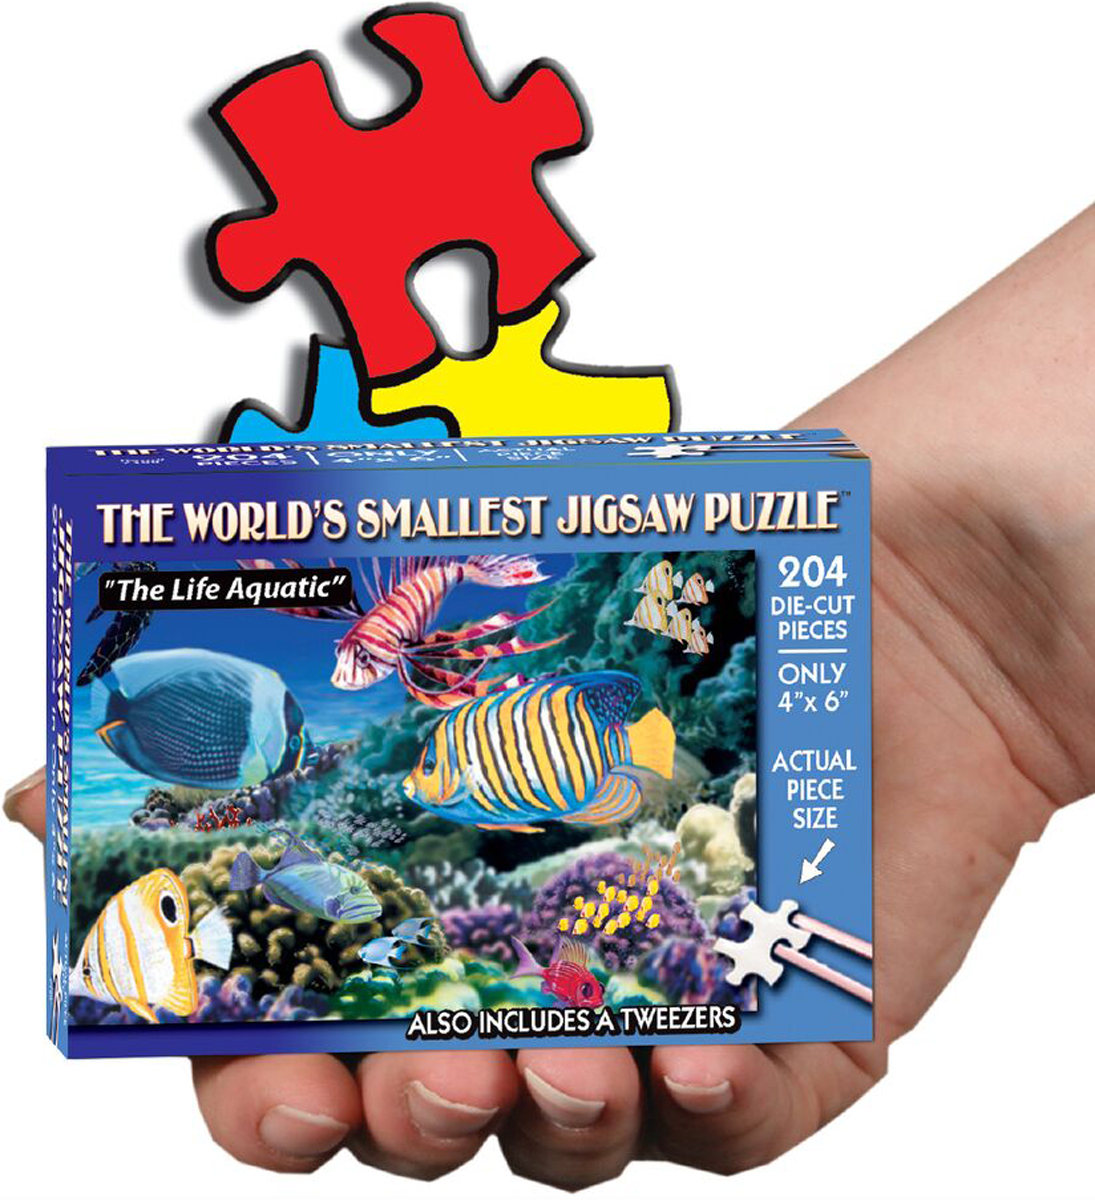 World's Smallest Jigsaw Puzzle - The Life Aquatic Under The Sea Jigsaw Puzzle